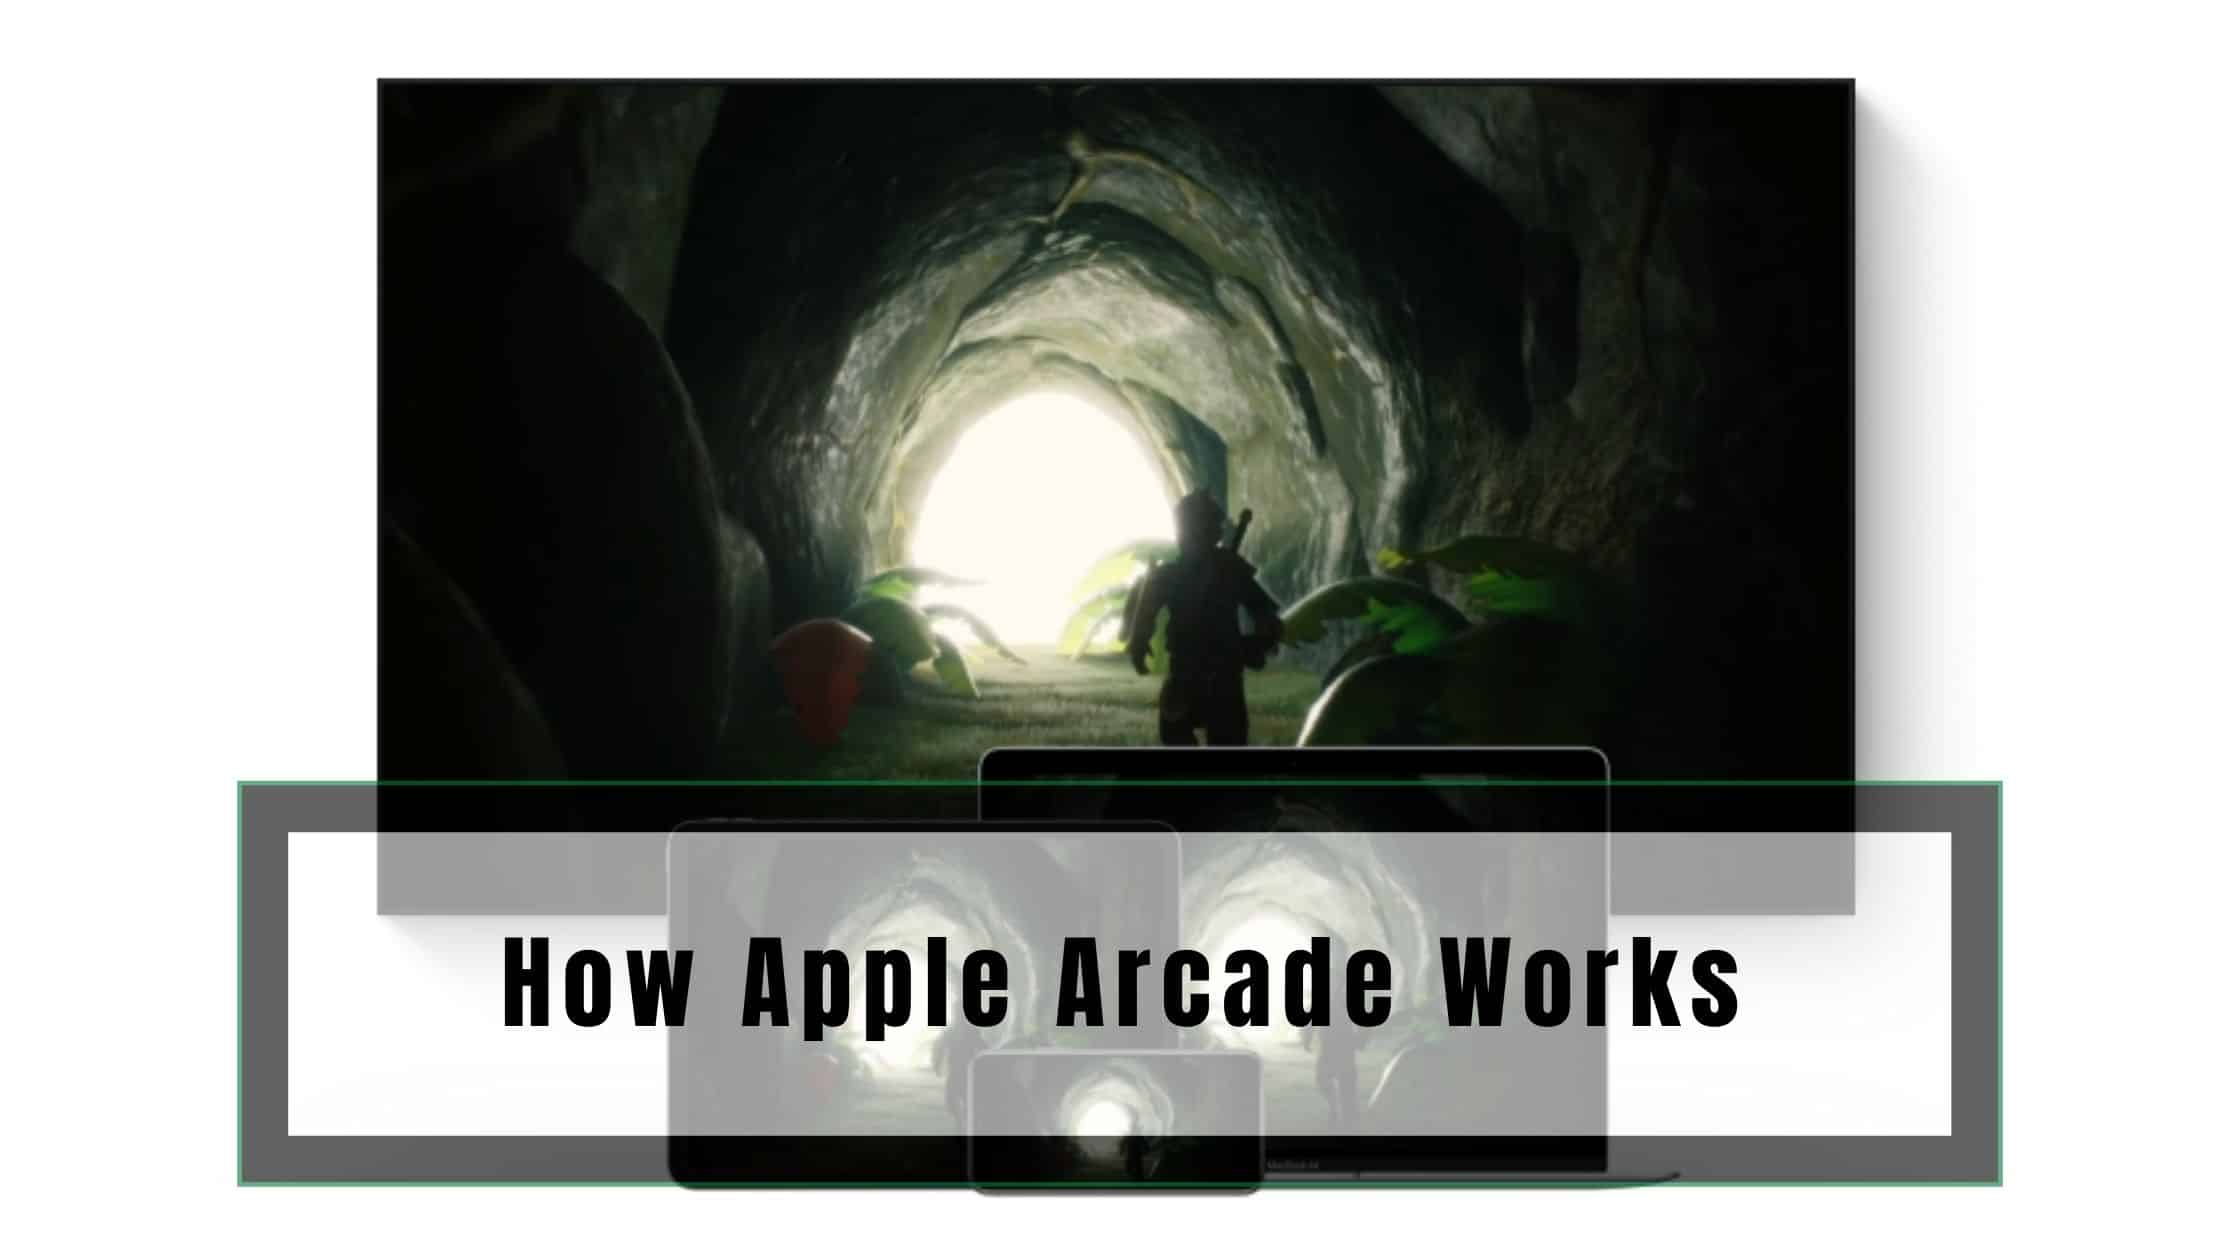 How Apple Arcade Works